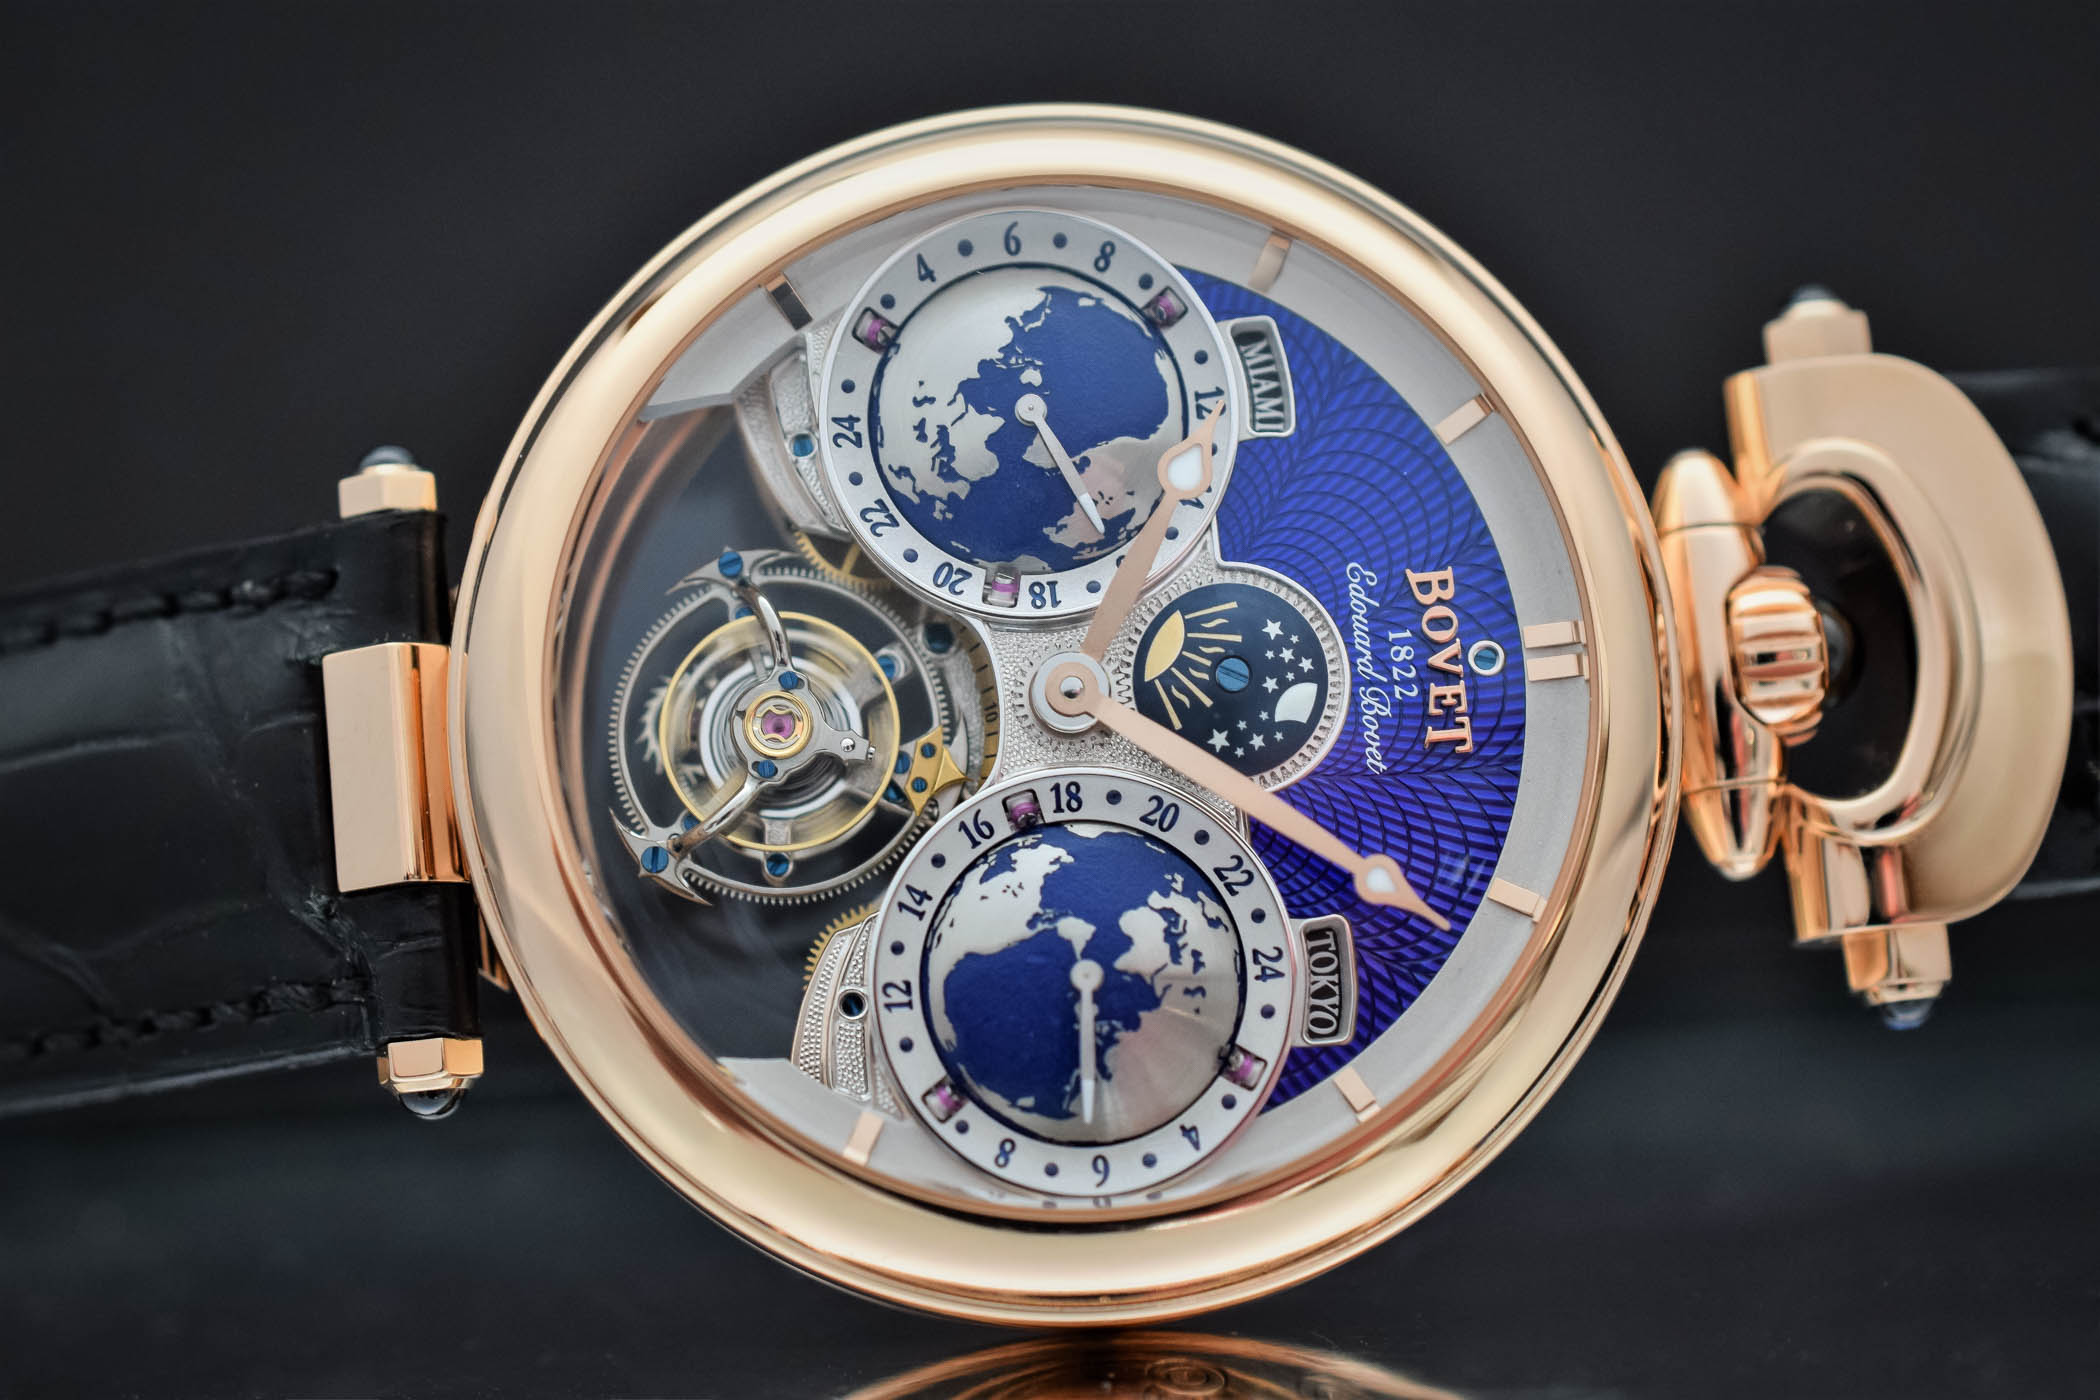 Bovet Amadeo Fleurier Edouard Bovet Flying Tourbillon - SIHH 2018